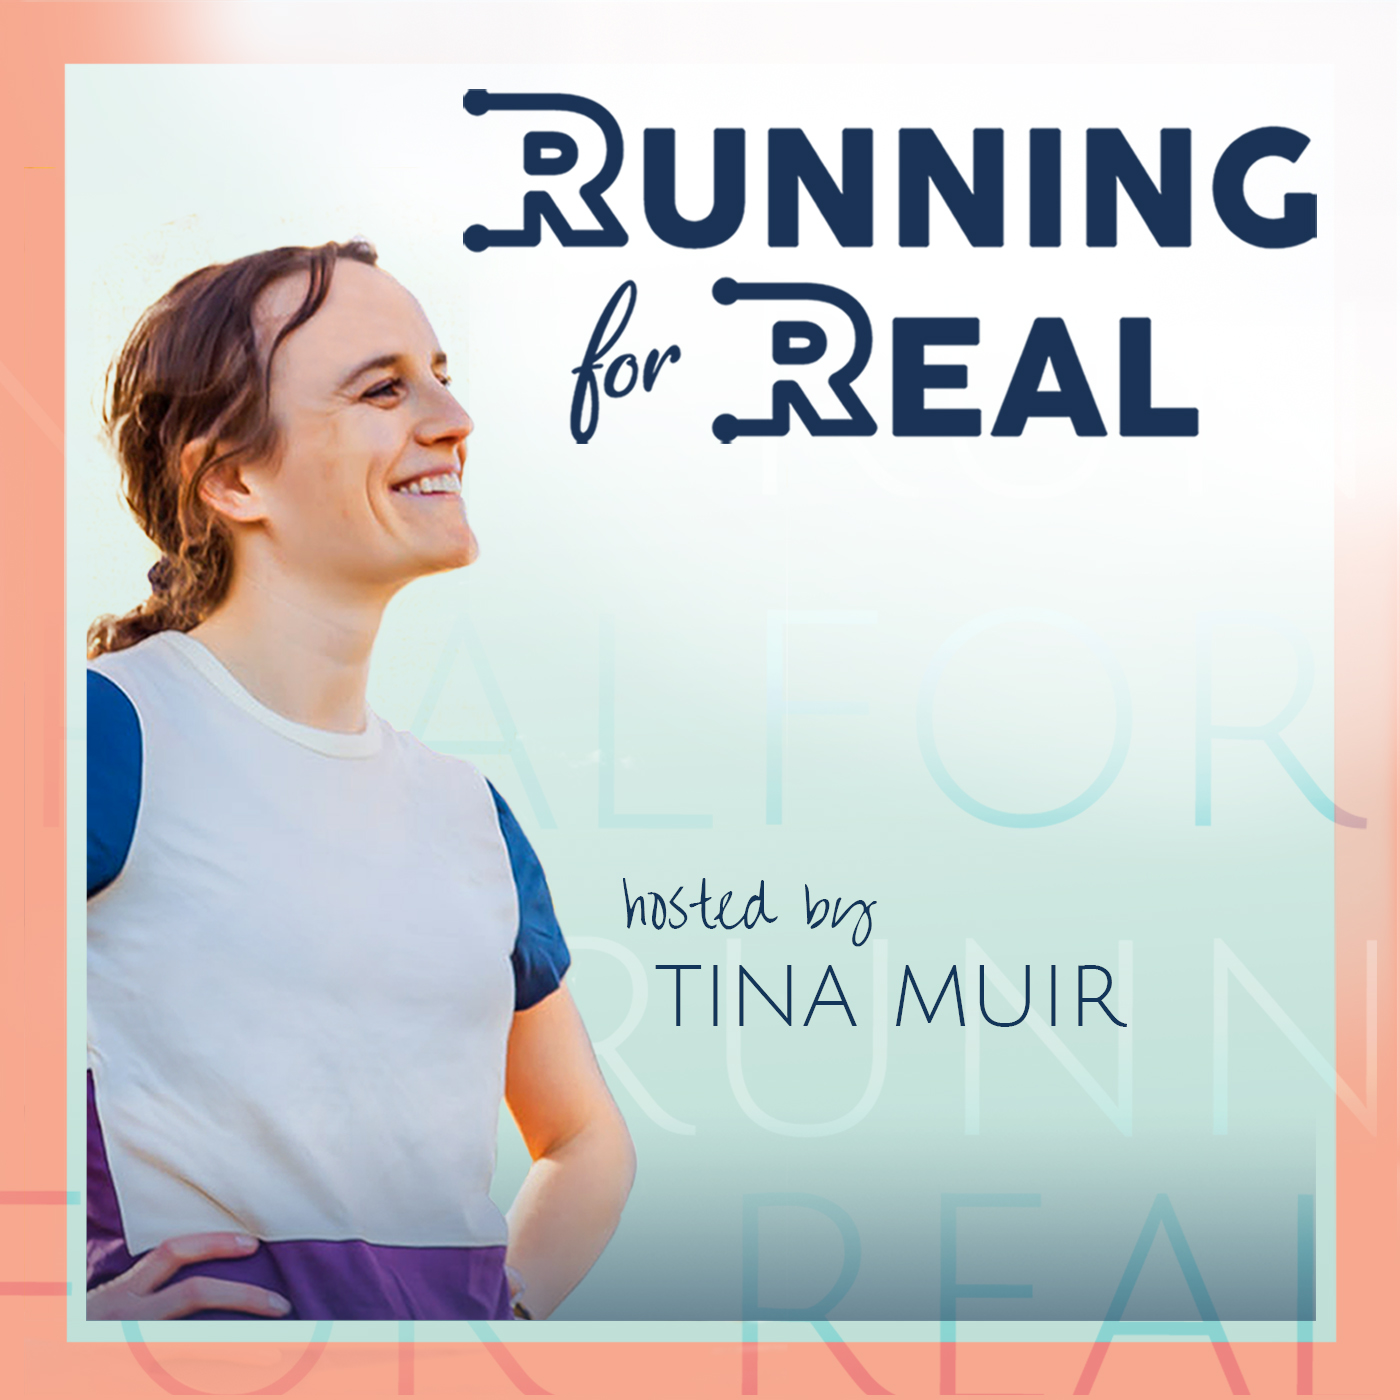 Mary Cain LIVE: How the Running Community Can Support Each Other - R4R 257